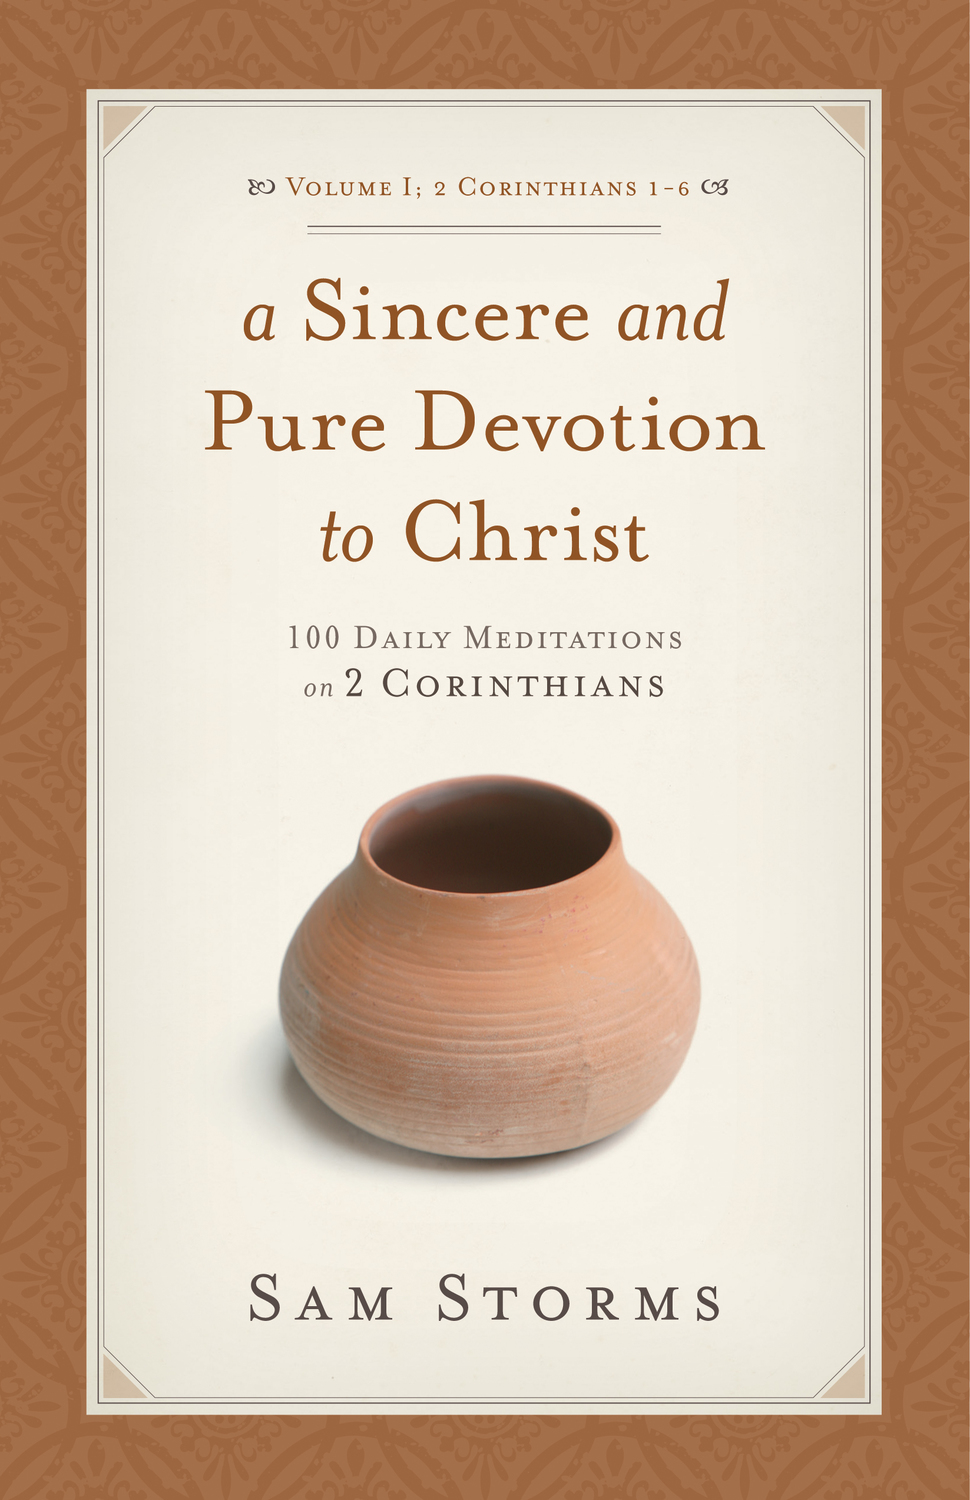 A Sincere and Pure Devotion to Christ